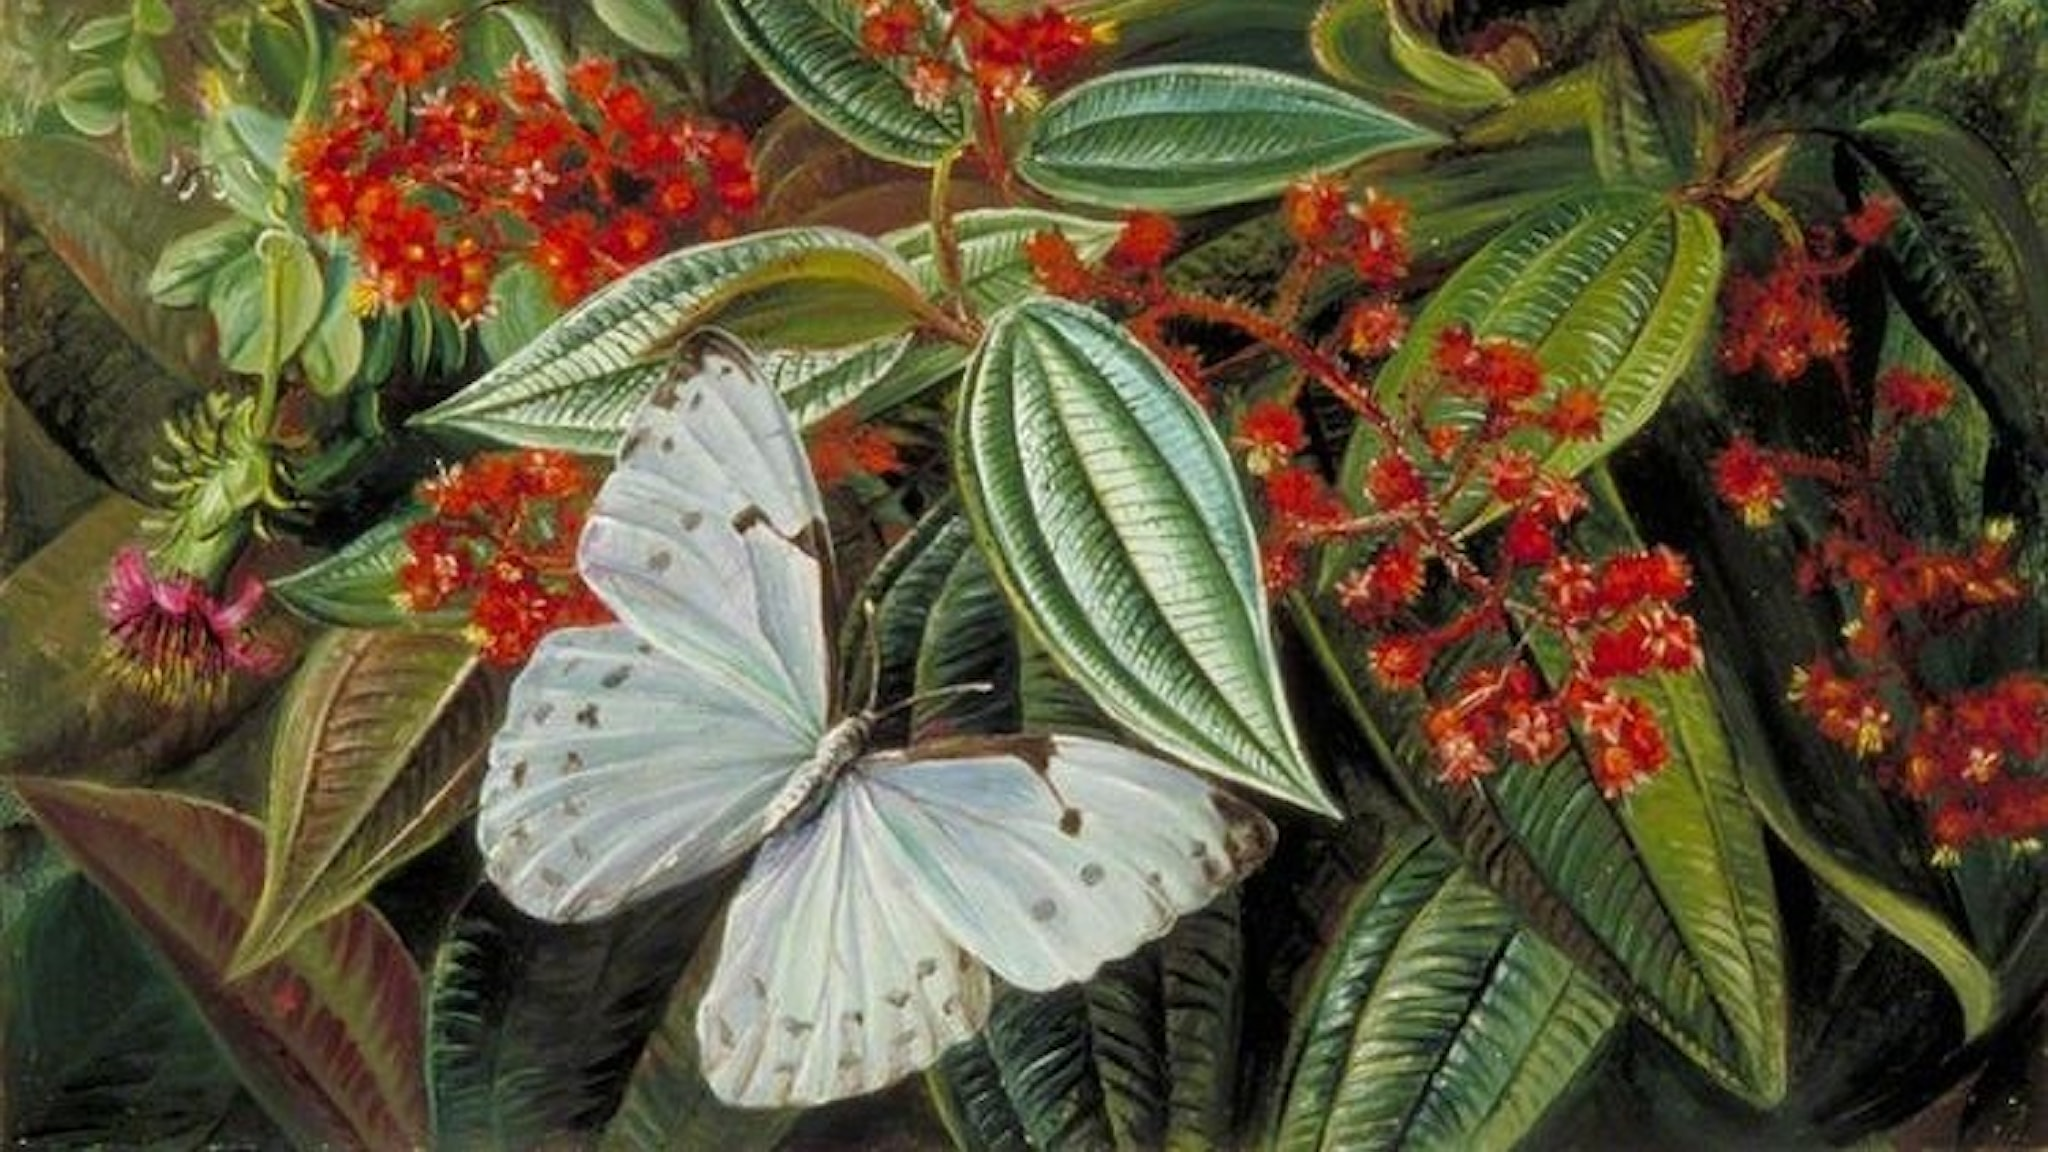 Trees laden with parasites and epiphytes in a brazilian garden. Marianne North -1873